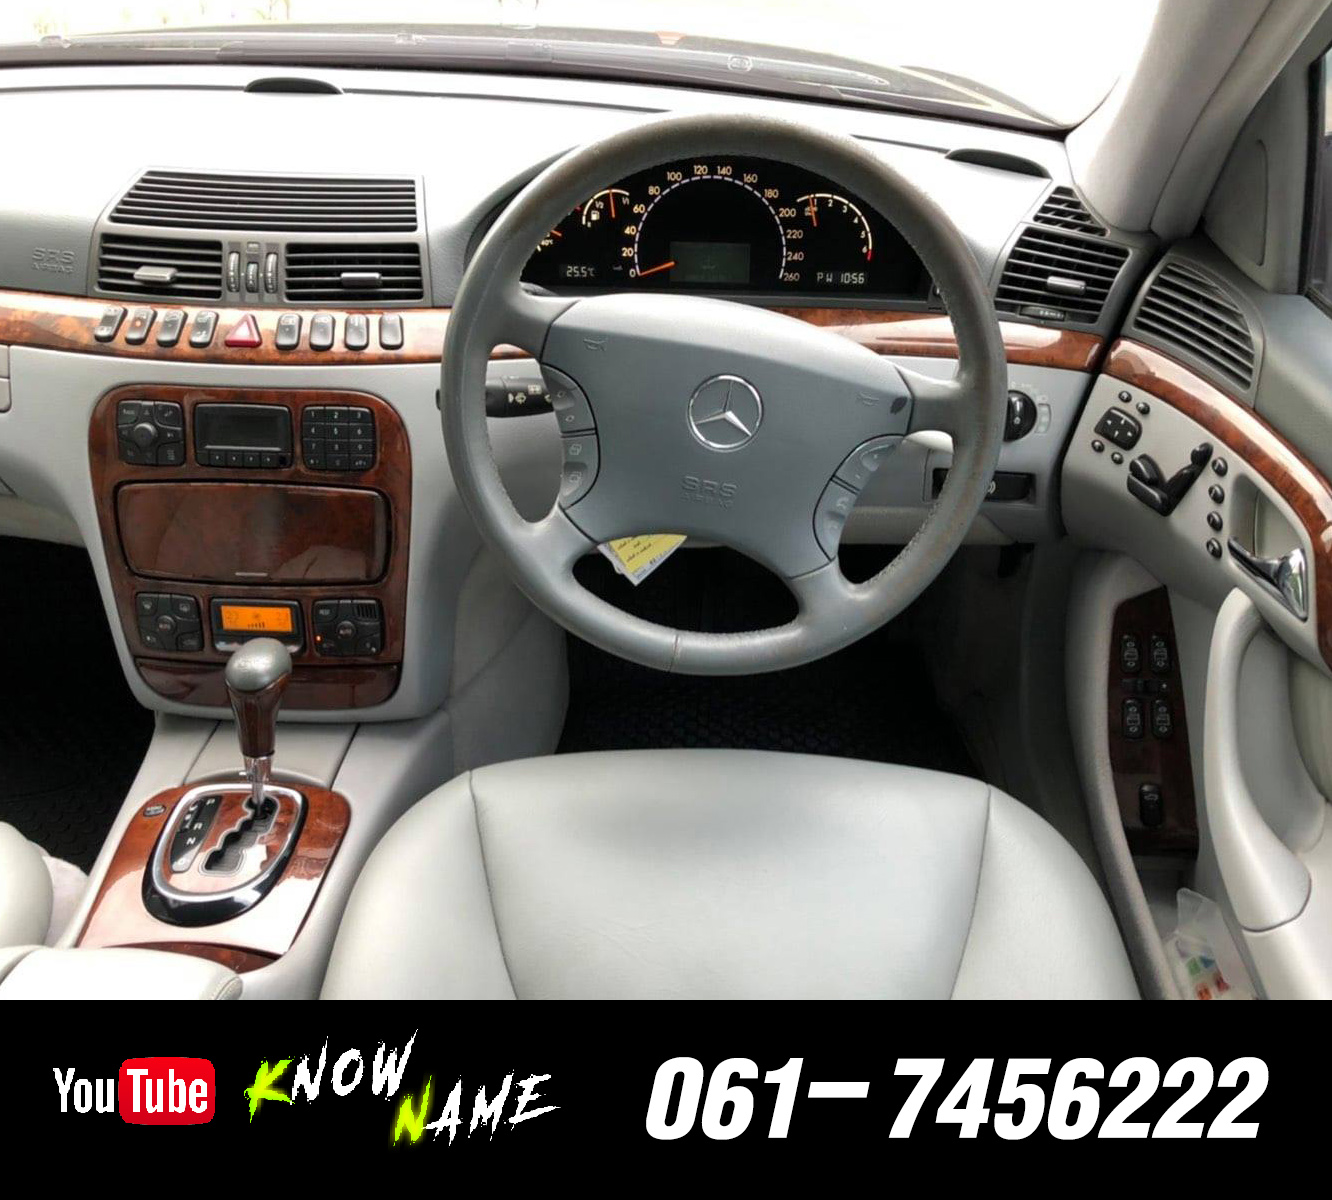 9-Benz S280 W220 2002